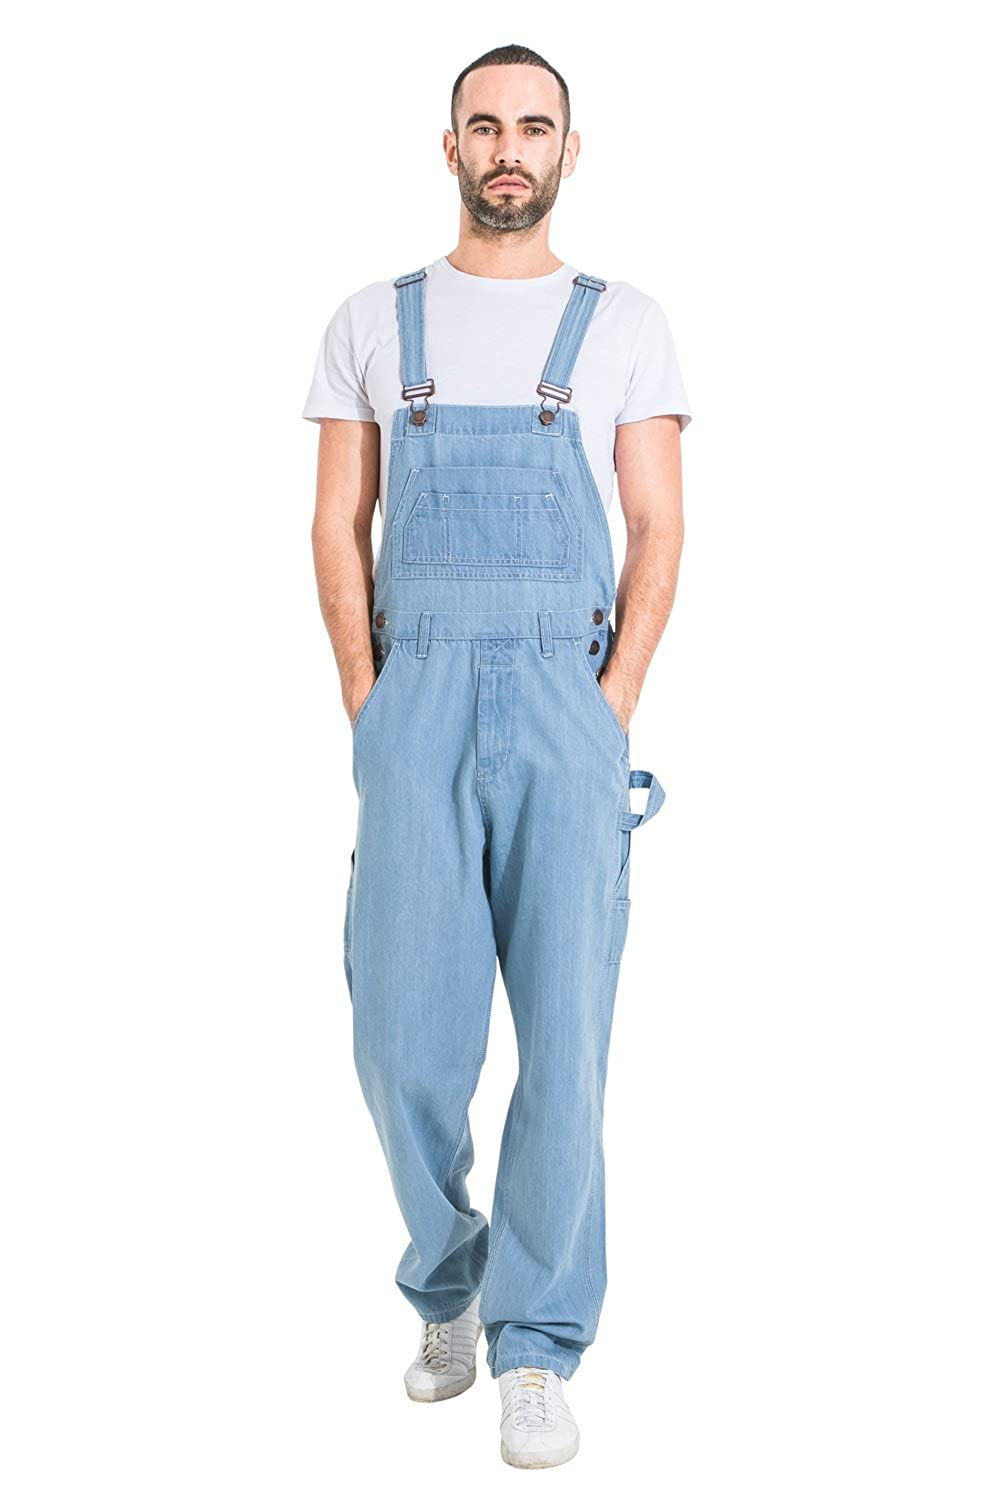 USKEES Basic Denim Dungarees Pale wash Mens Value Overalls Relaxed Fit